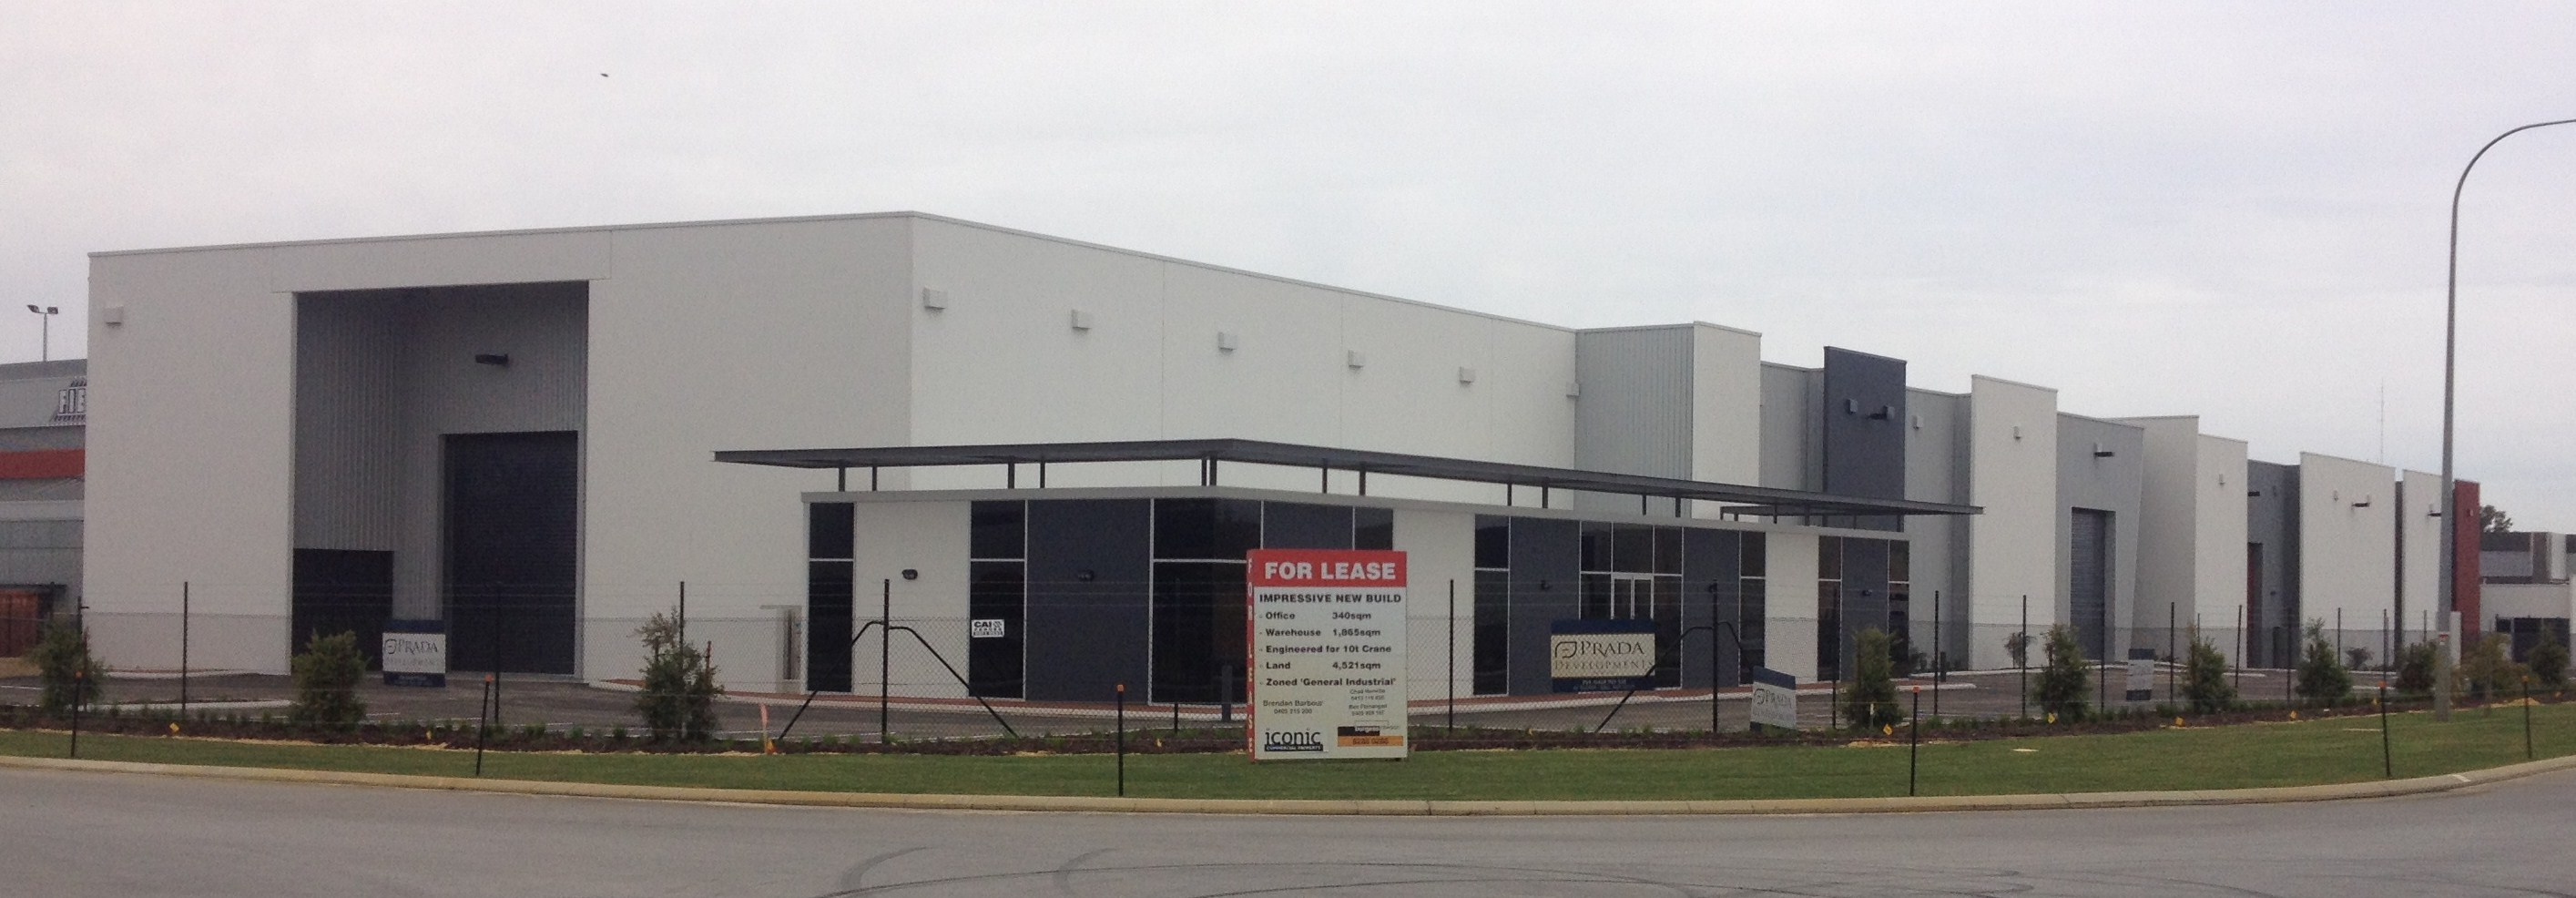 Exterior of commercial warehouse units, finished in tones of grey